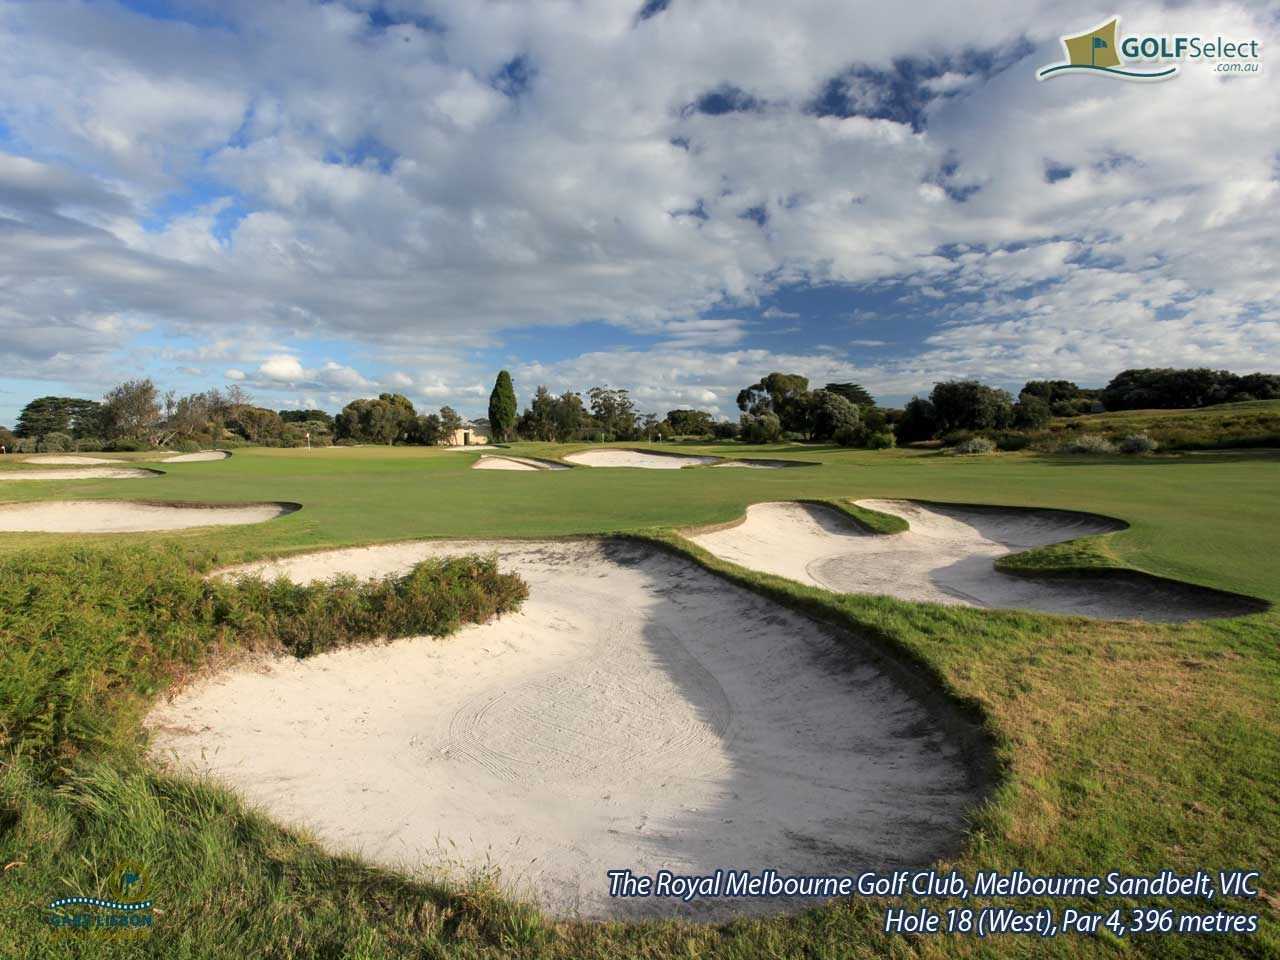 The Royal Melbourne GC (West Course) Hole 18 (West), Par 4, 396 metres